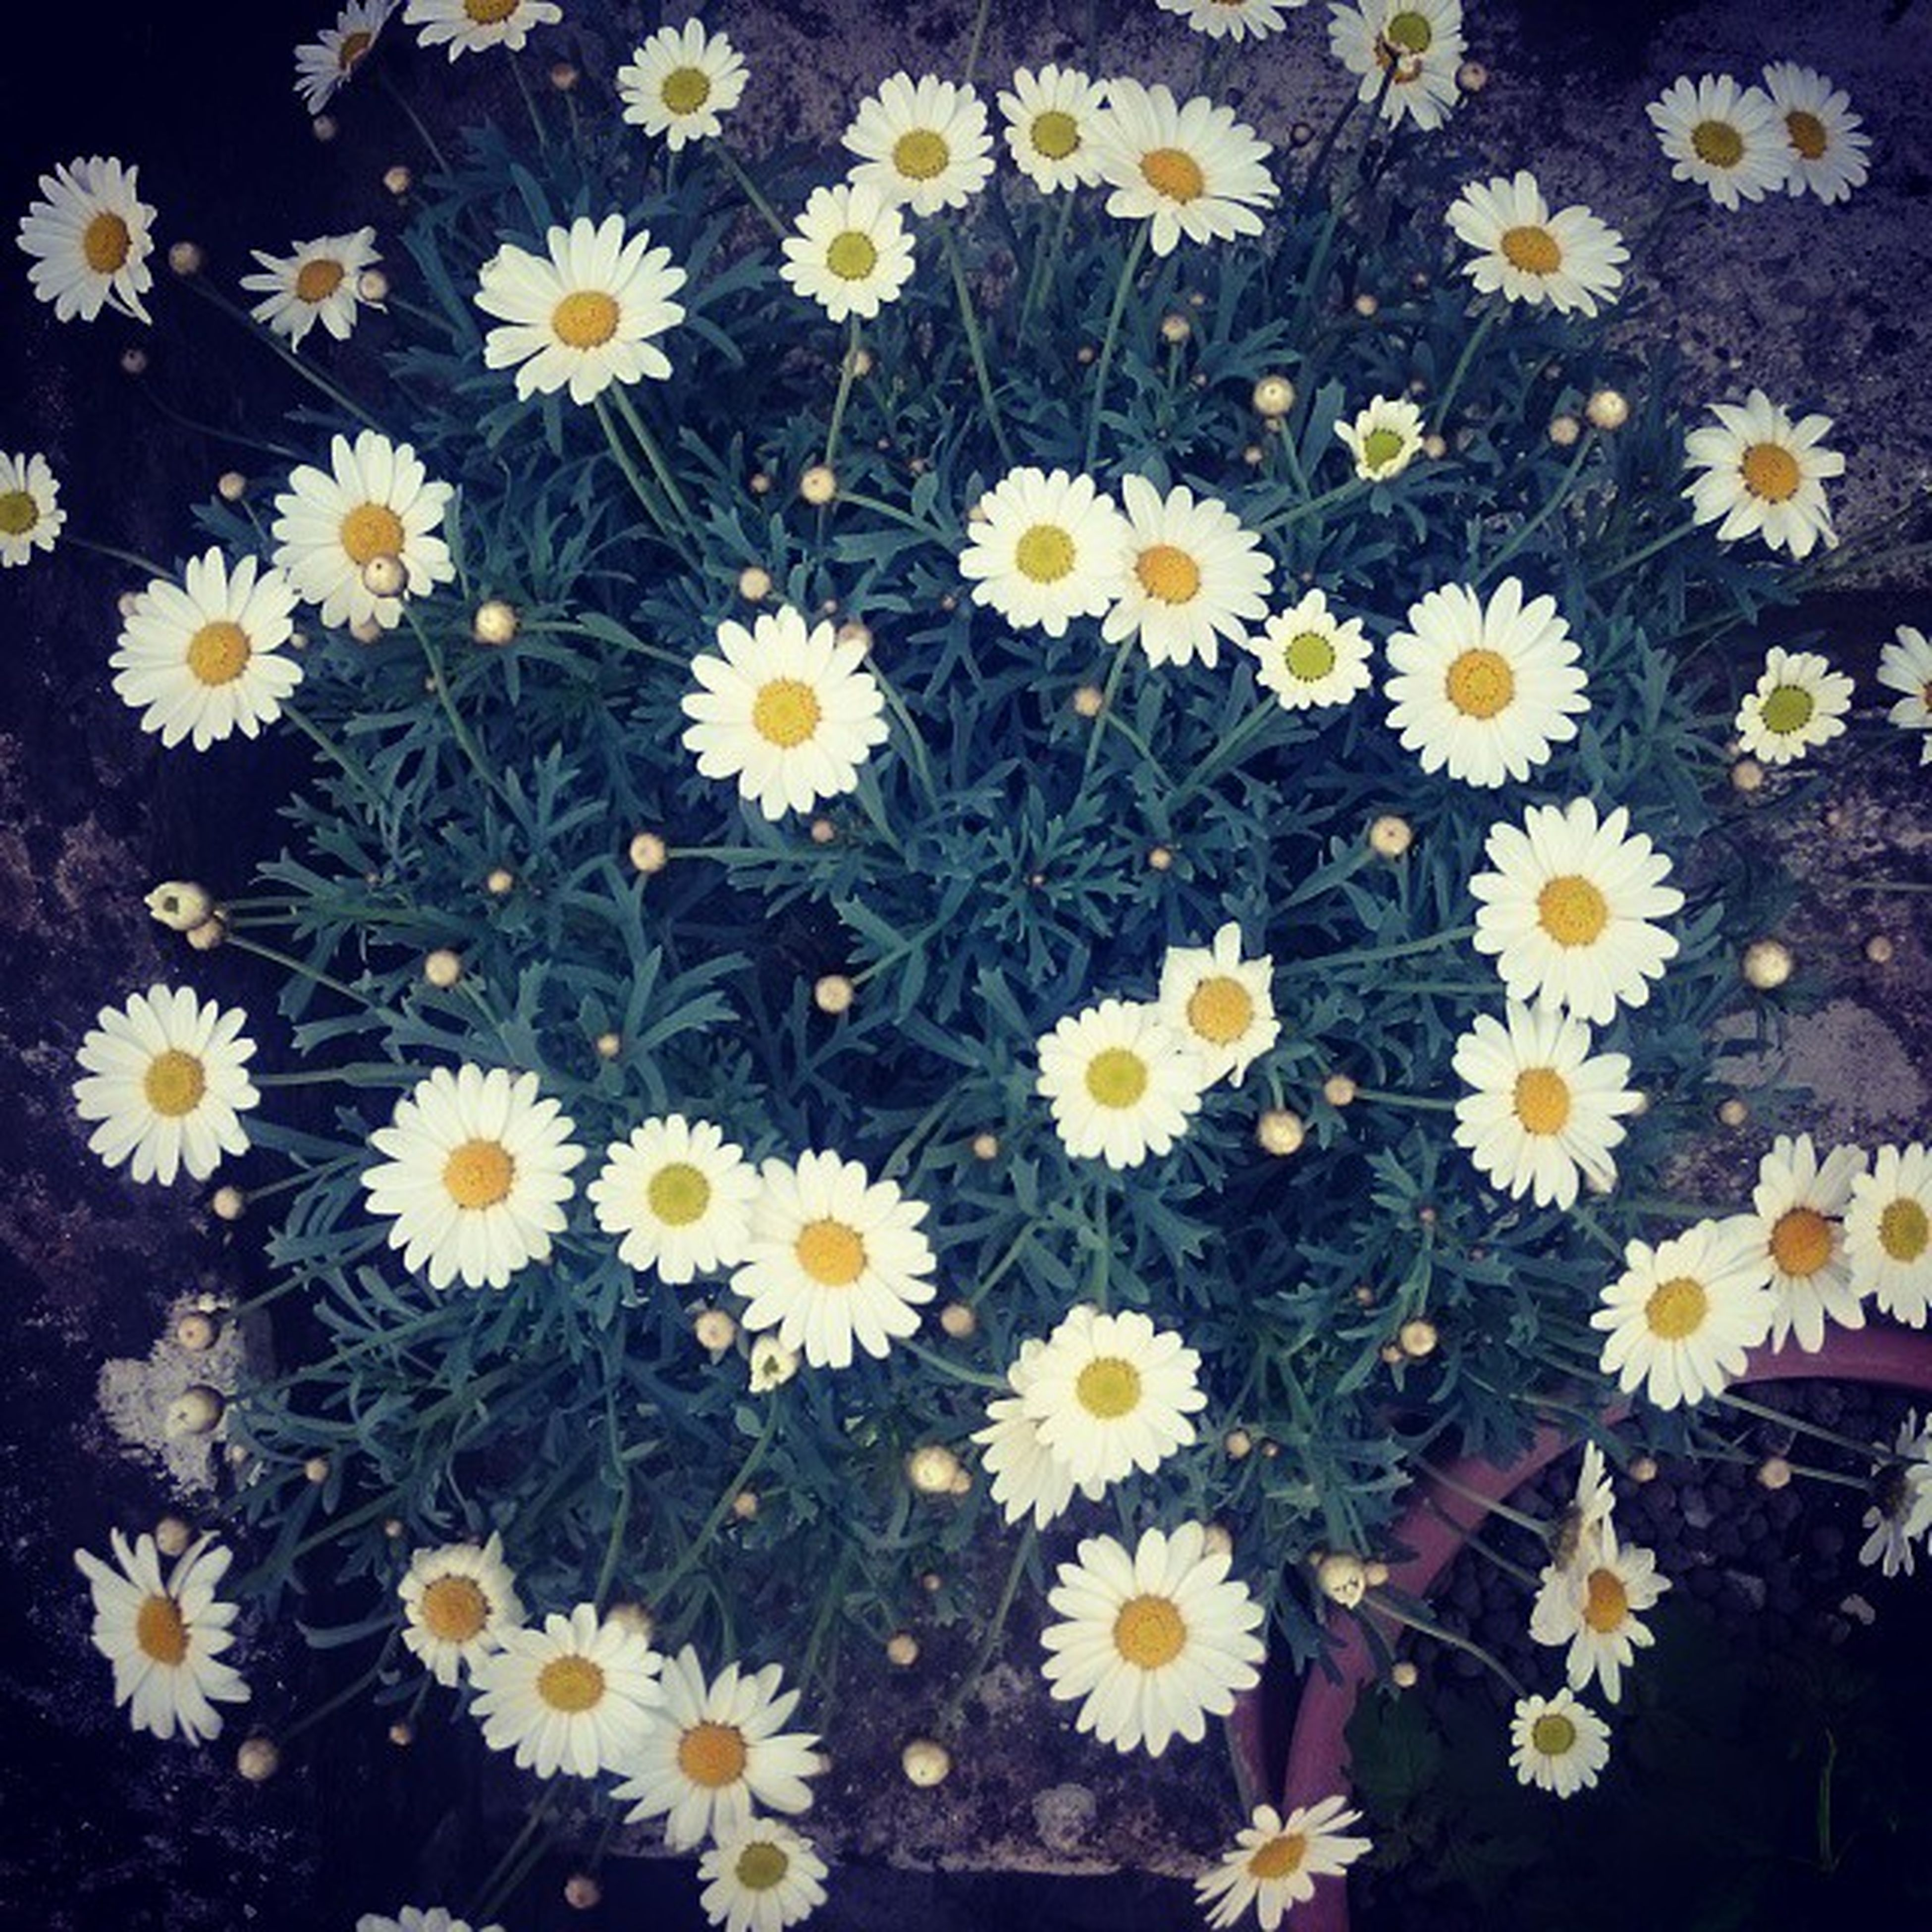 flower, freshness, daisy, fragility, petal, growth, beauty in nature, white color, flower head, blooming, nature, high angle view, yellow, plant, field, abundance, pollen, in bloom, blossom, outdoors